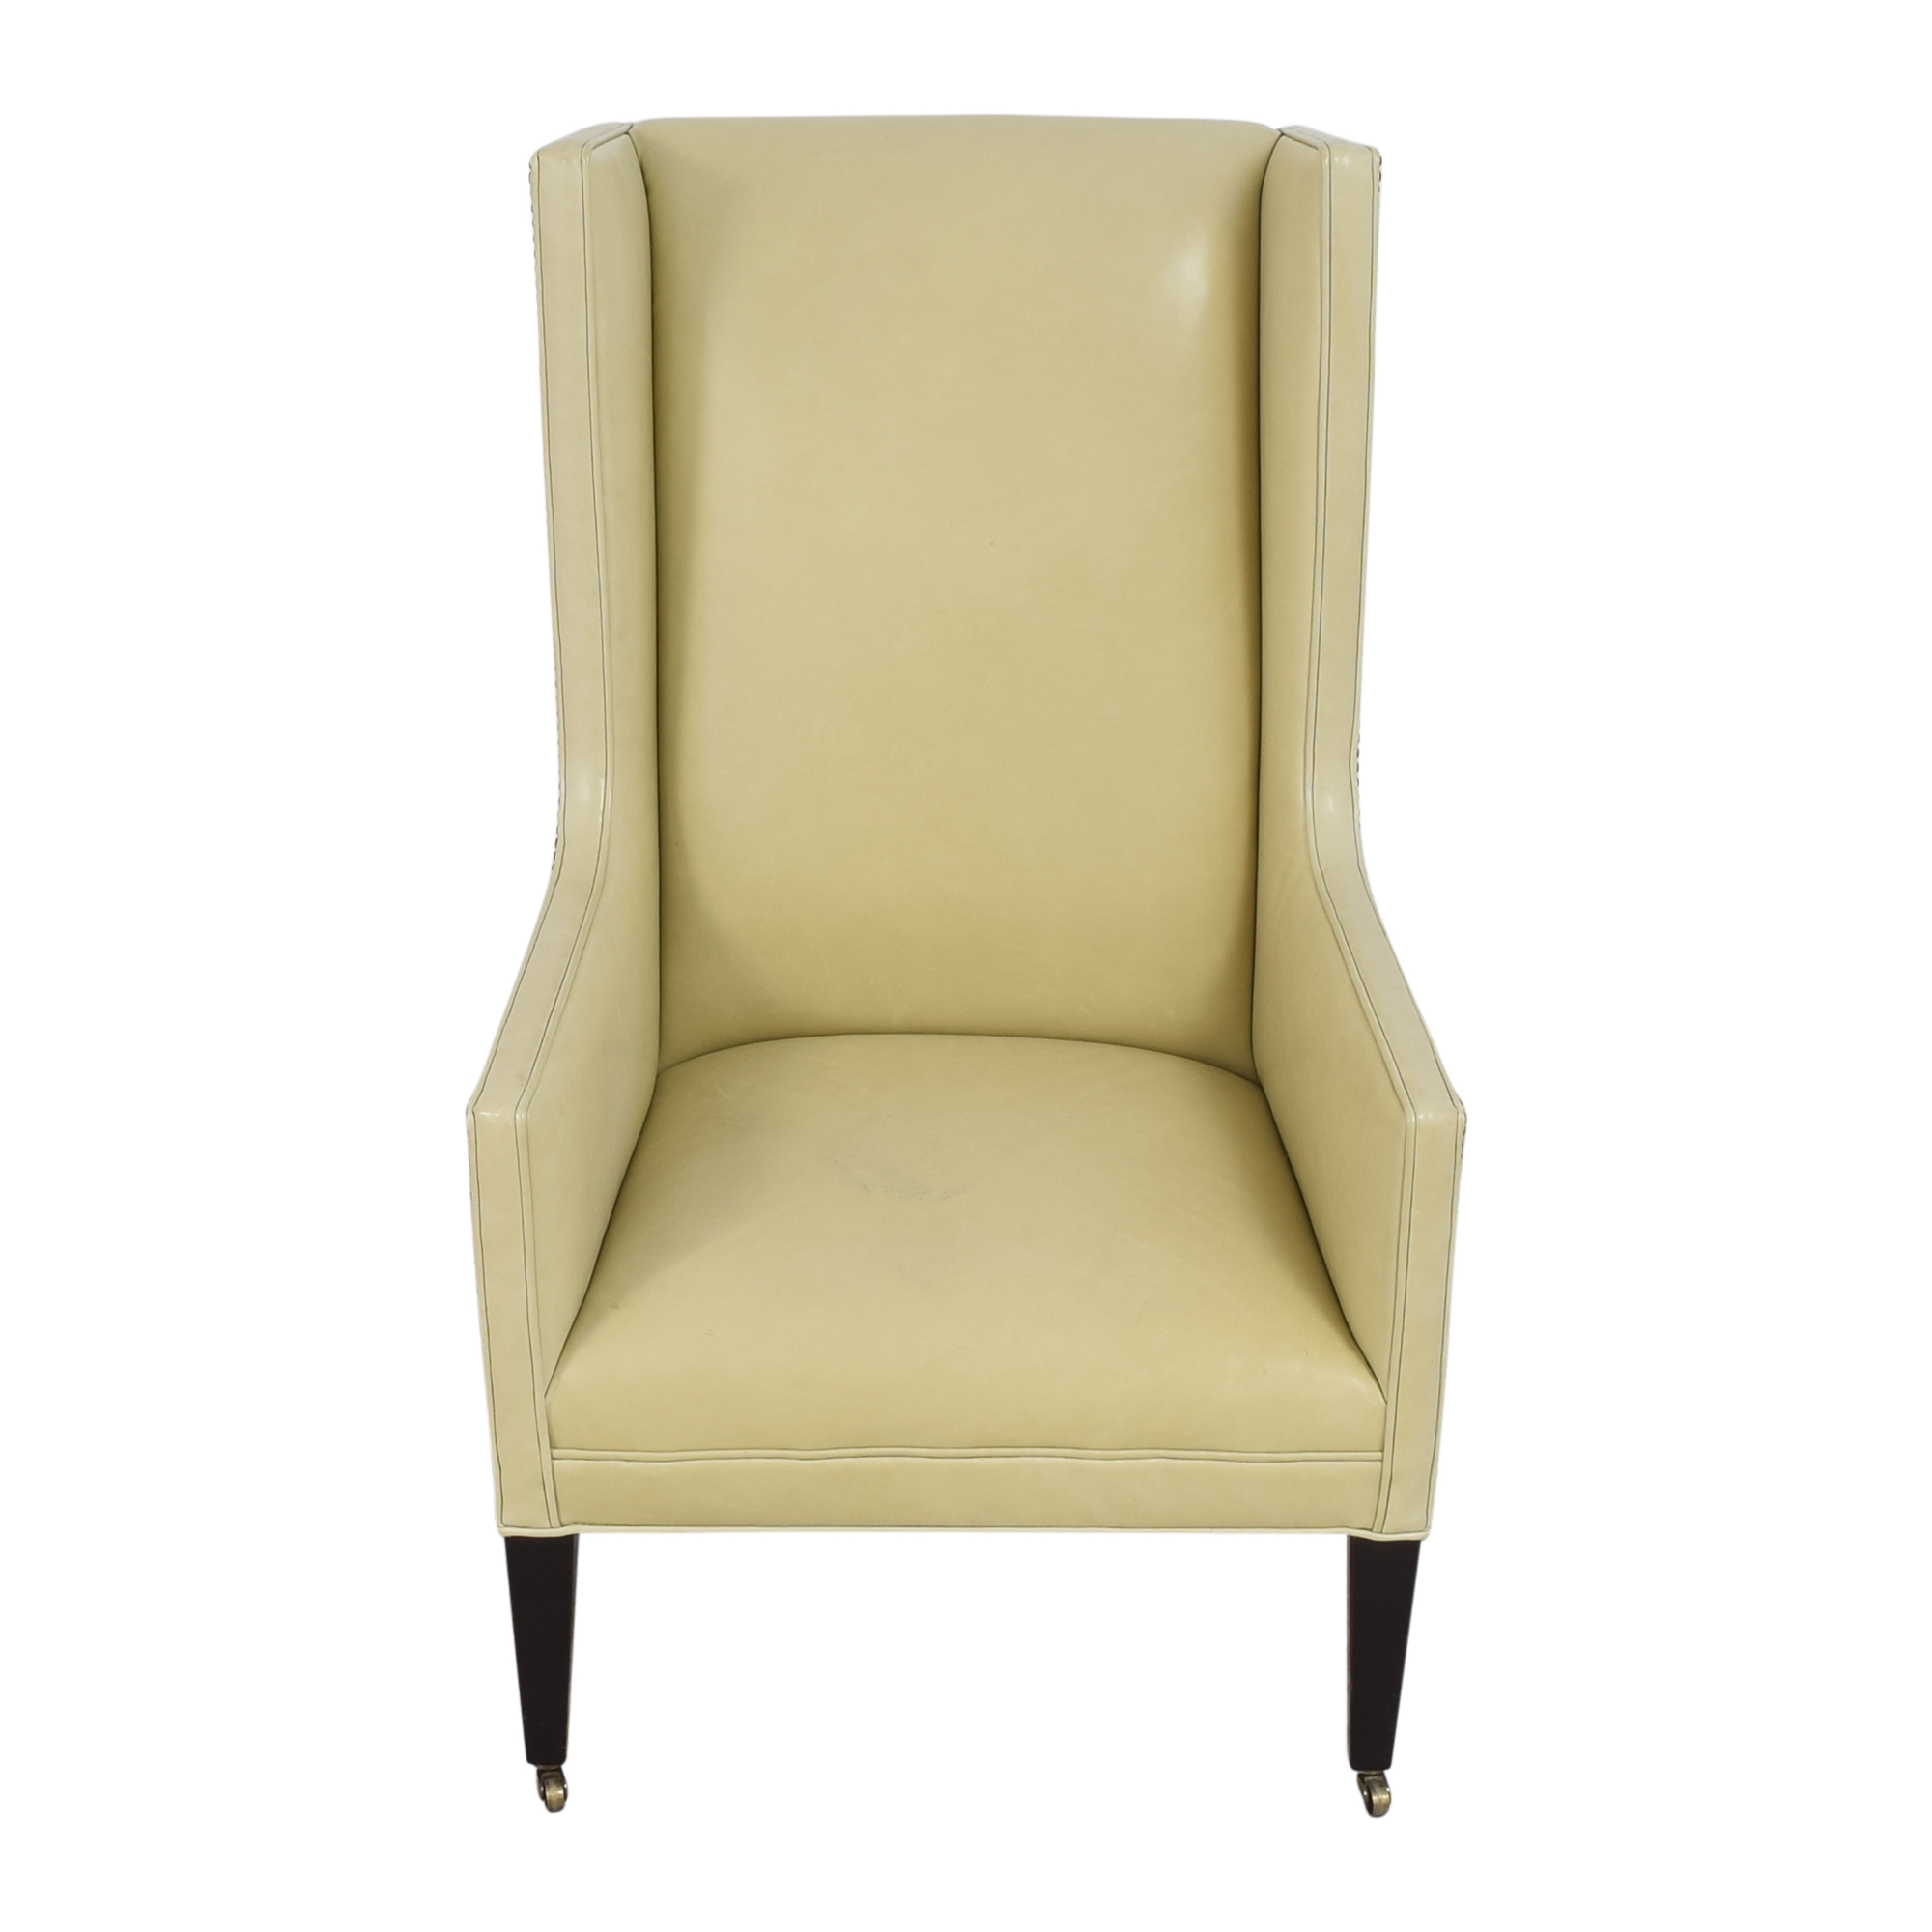 buy Crate & Barrel Wingback Chair Crate & Barrel Accent Chairs